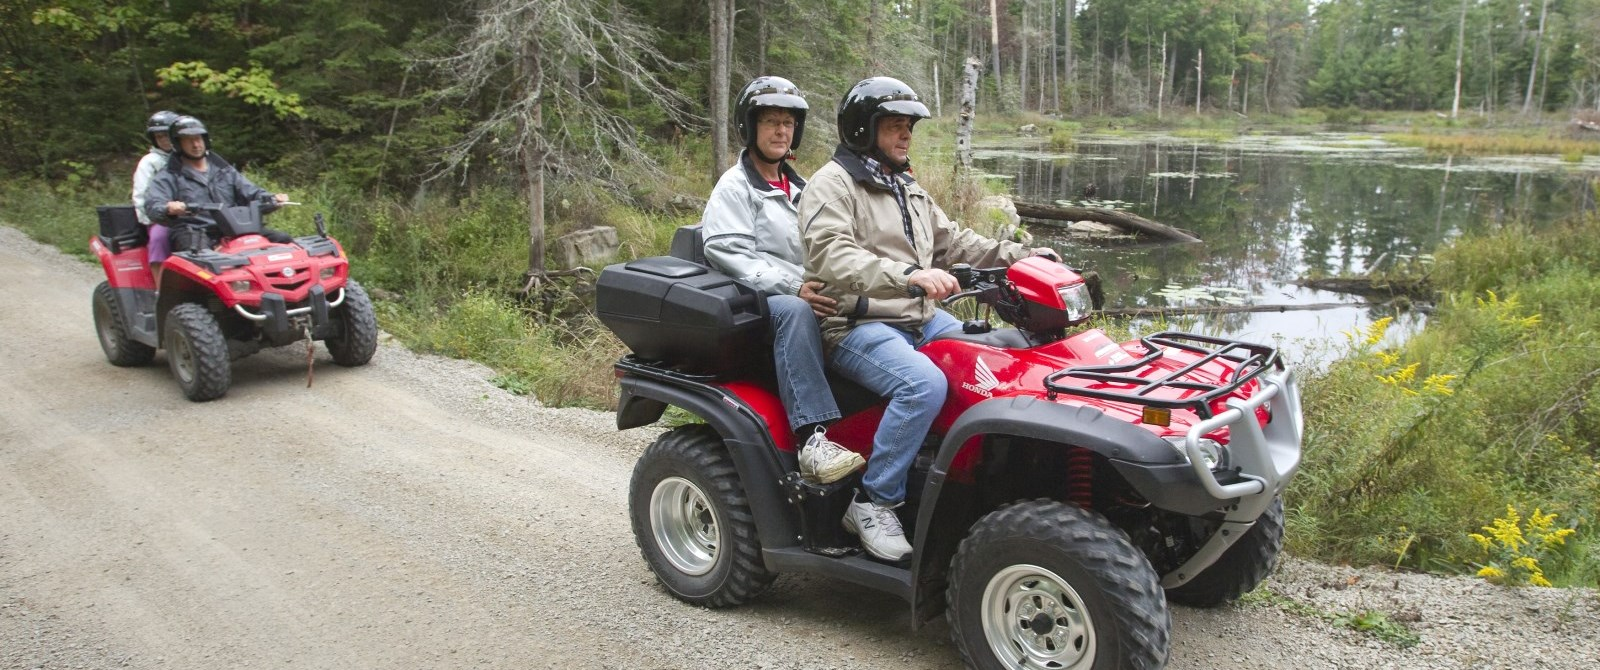 Two ATVs on trail